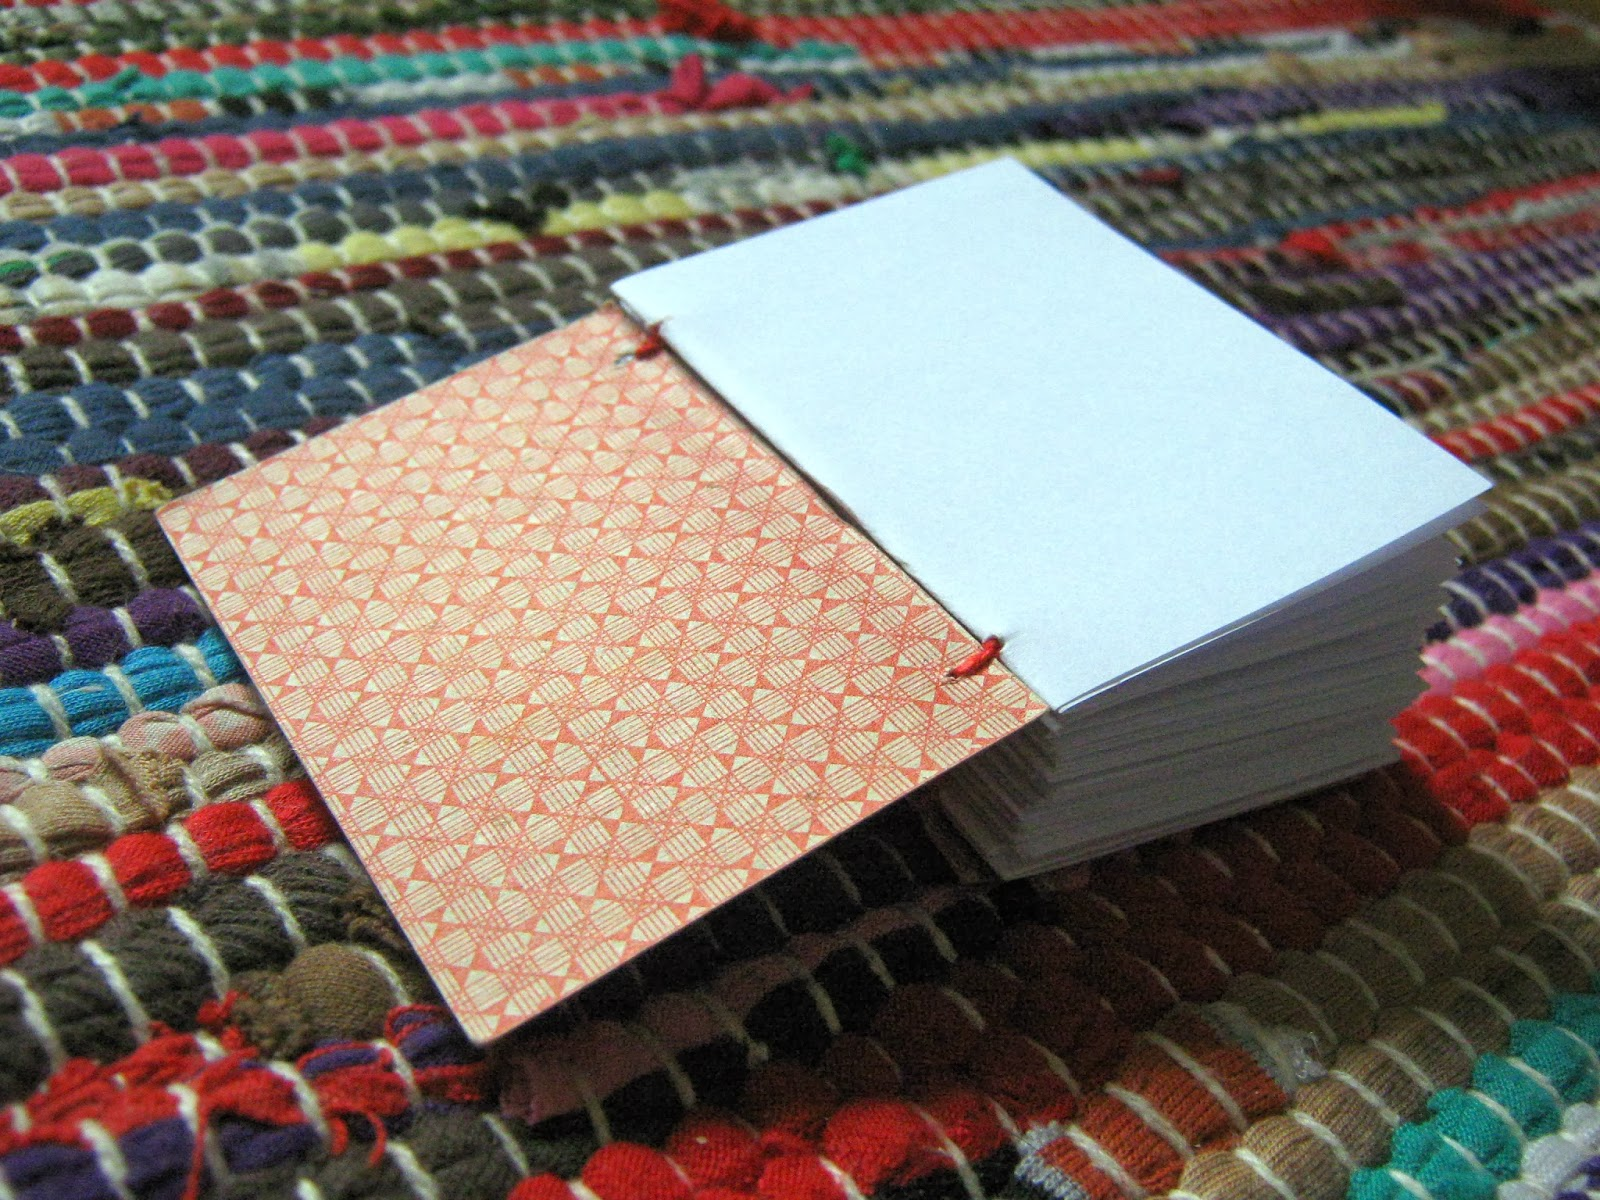 Vintage Playing Card Notebook